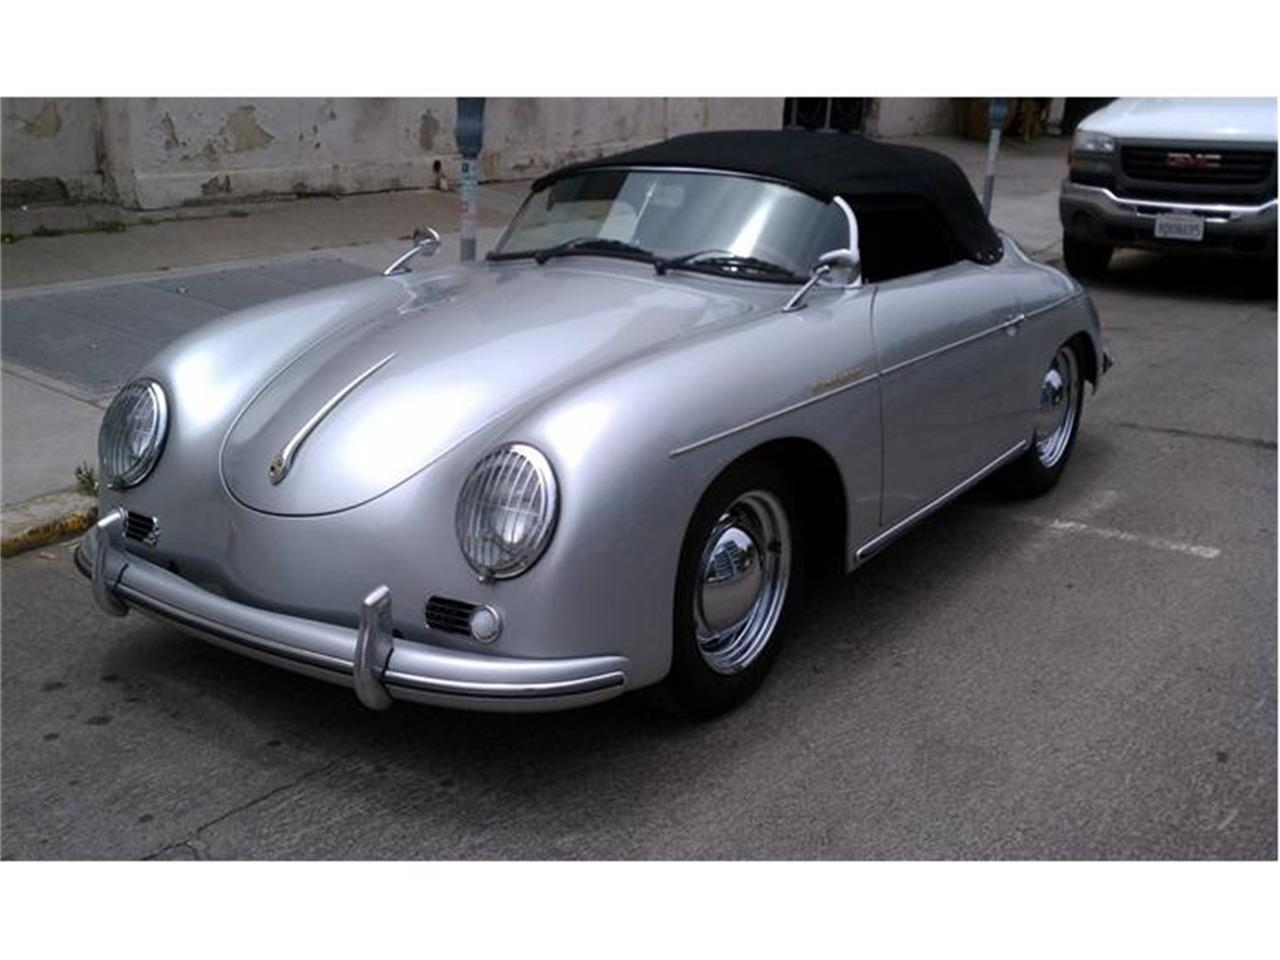 Large Picture of Classic 1957 Porsche Speedster located in San Diego California - $27,950.00 - 93BH